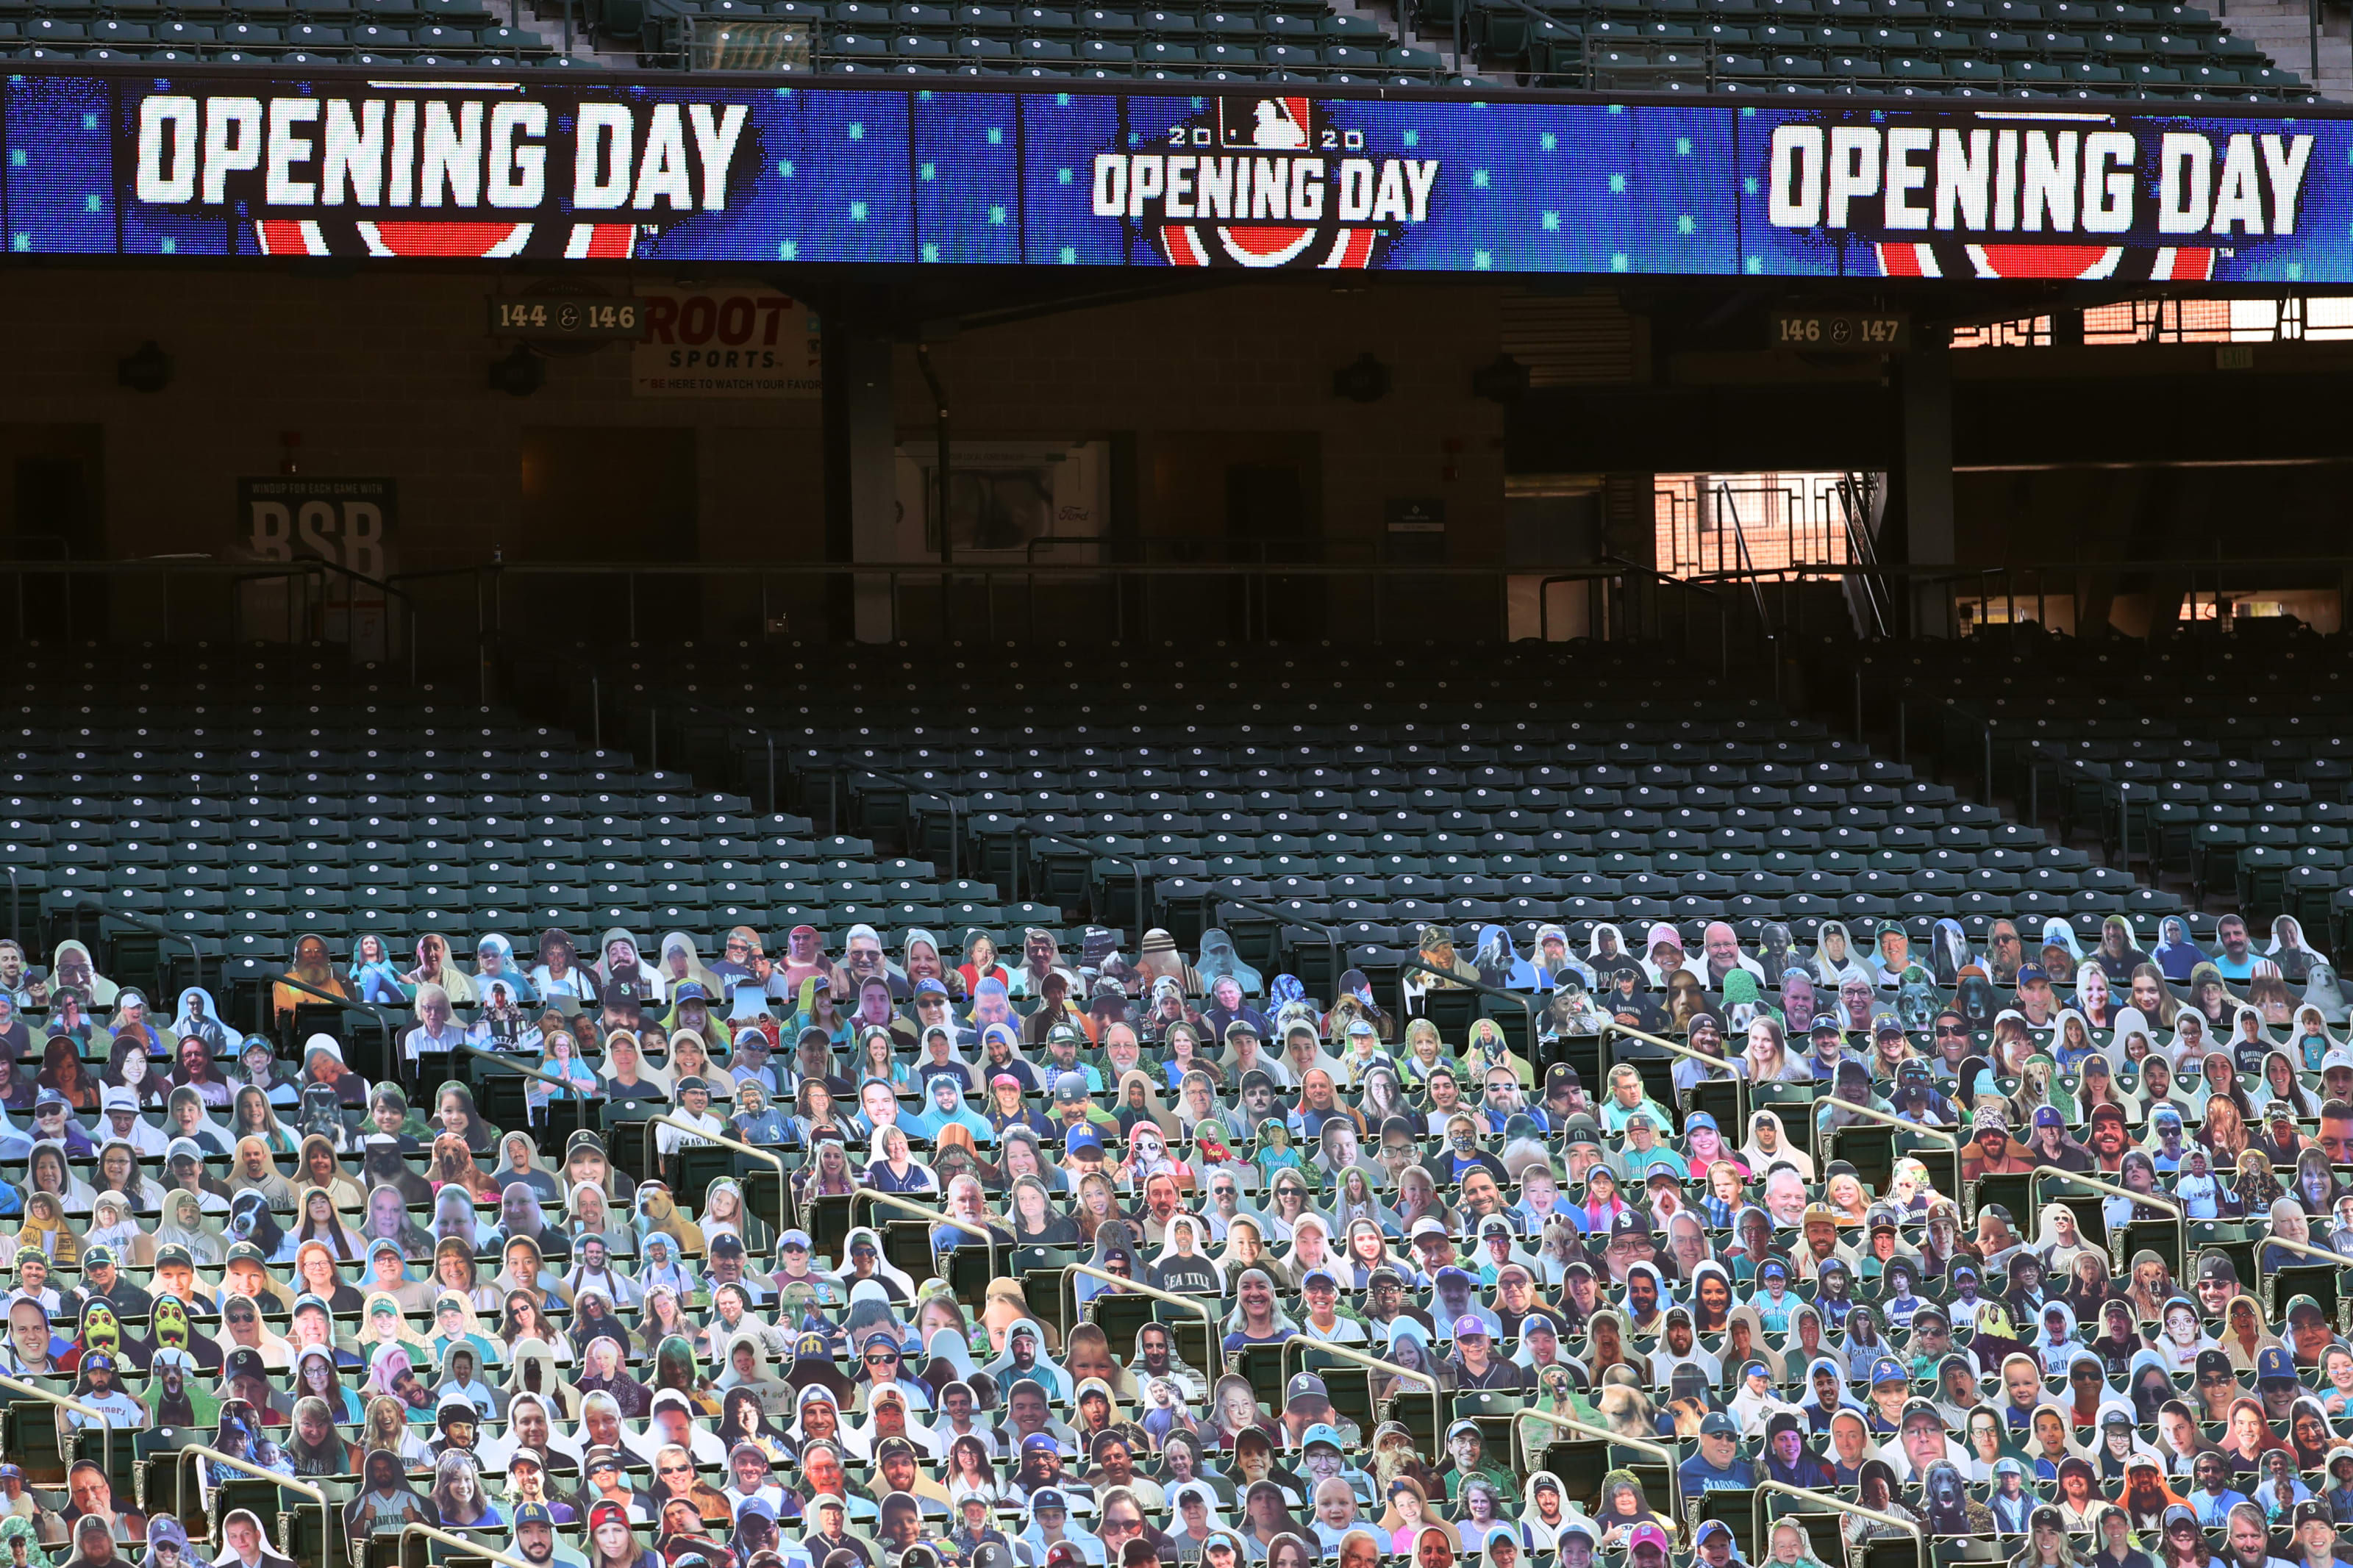 Seattle Mariners Opening Day